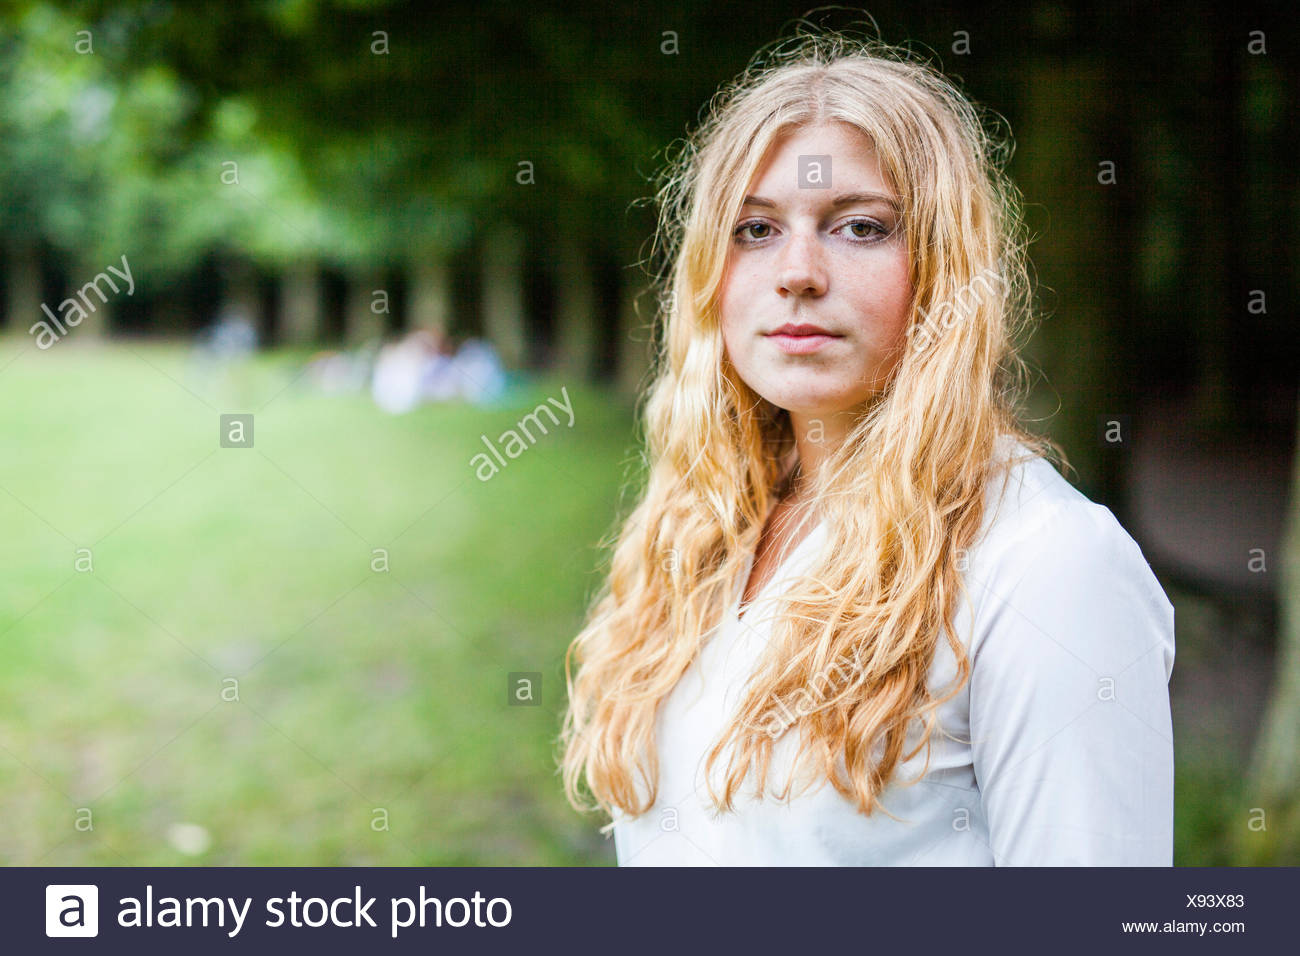 Portrait of beautiful young woman with blond hair in park - Stock Image